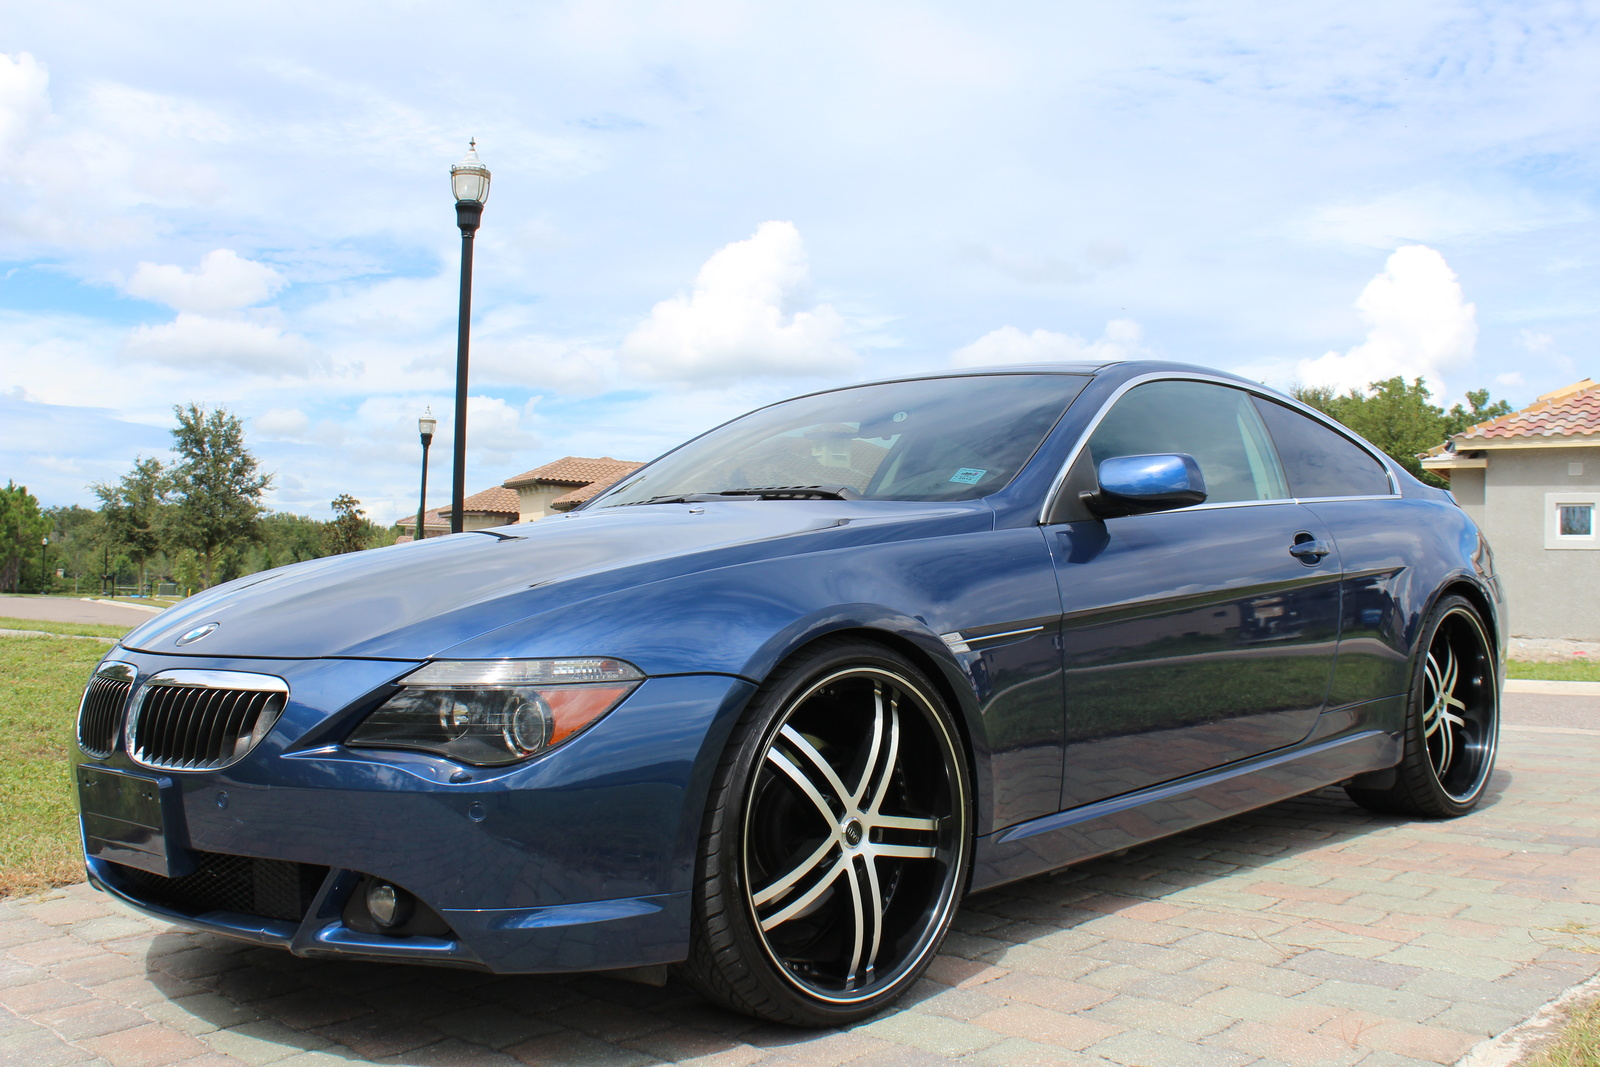 used bmw 6 series for sale tampa fl cargurus. Black Bedroom Furniture Sets. Home Design Ideas